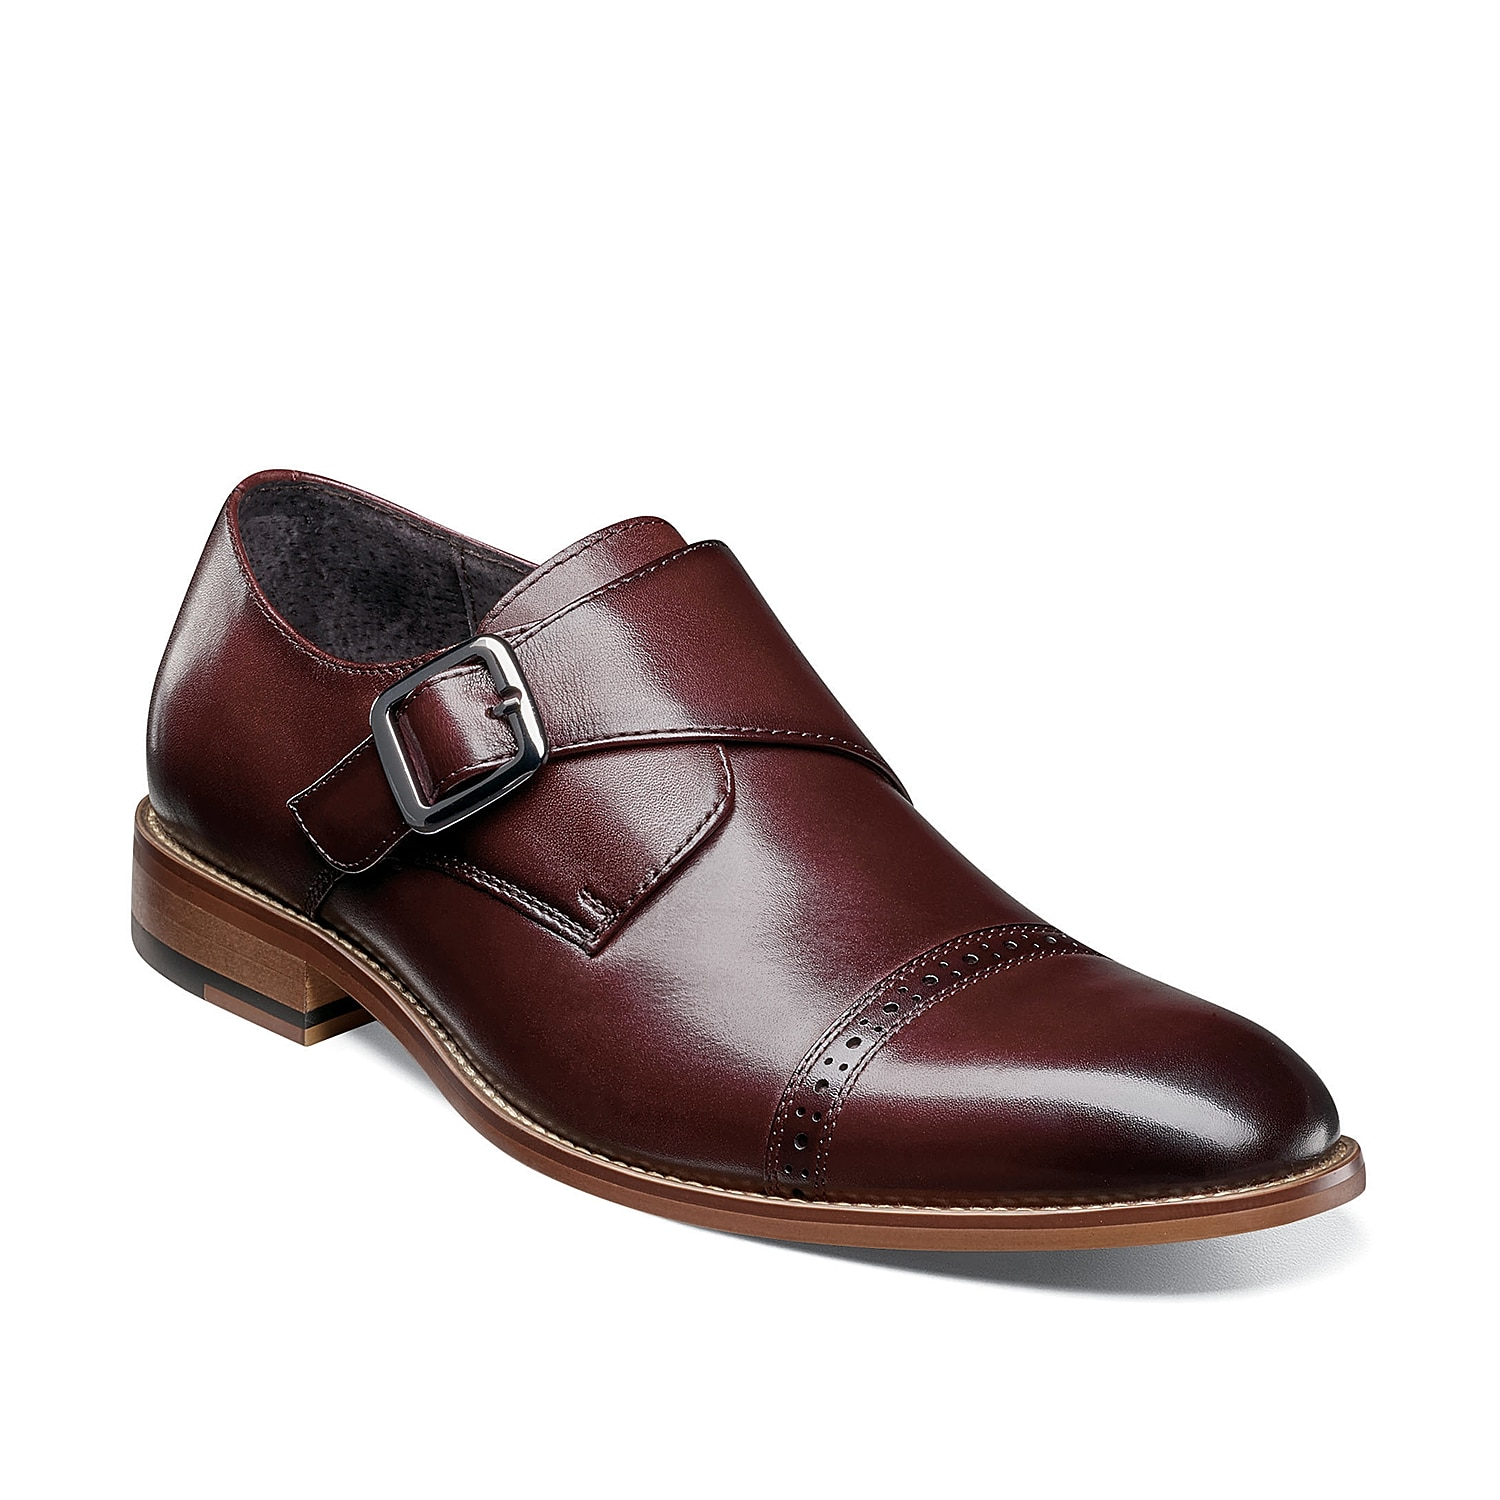 Sophistication comes easy with the Desmond monk strap slip-on from Stacy Adams. This leather pair features a perforated cap toe for added interest.